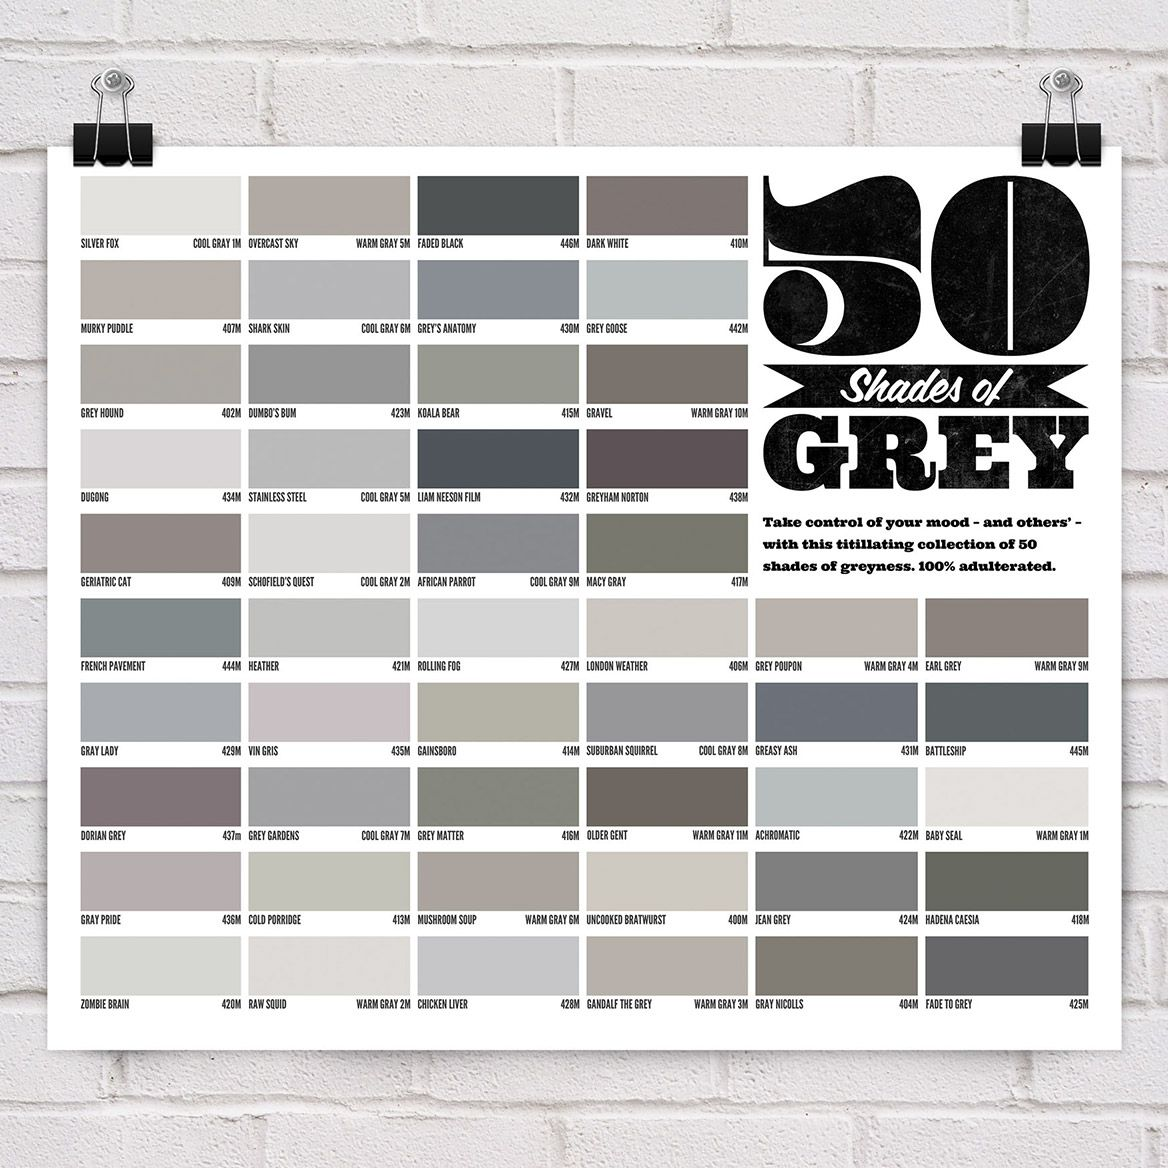 shades of grey book sample theatre s leiter side shades of grey shades of grey poster paint colors grey and liam neeson 50 shades of grey poster